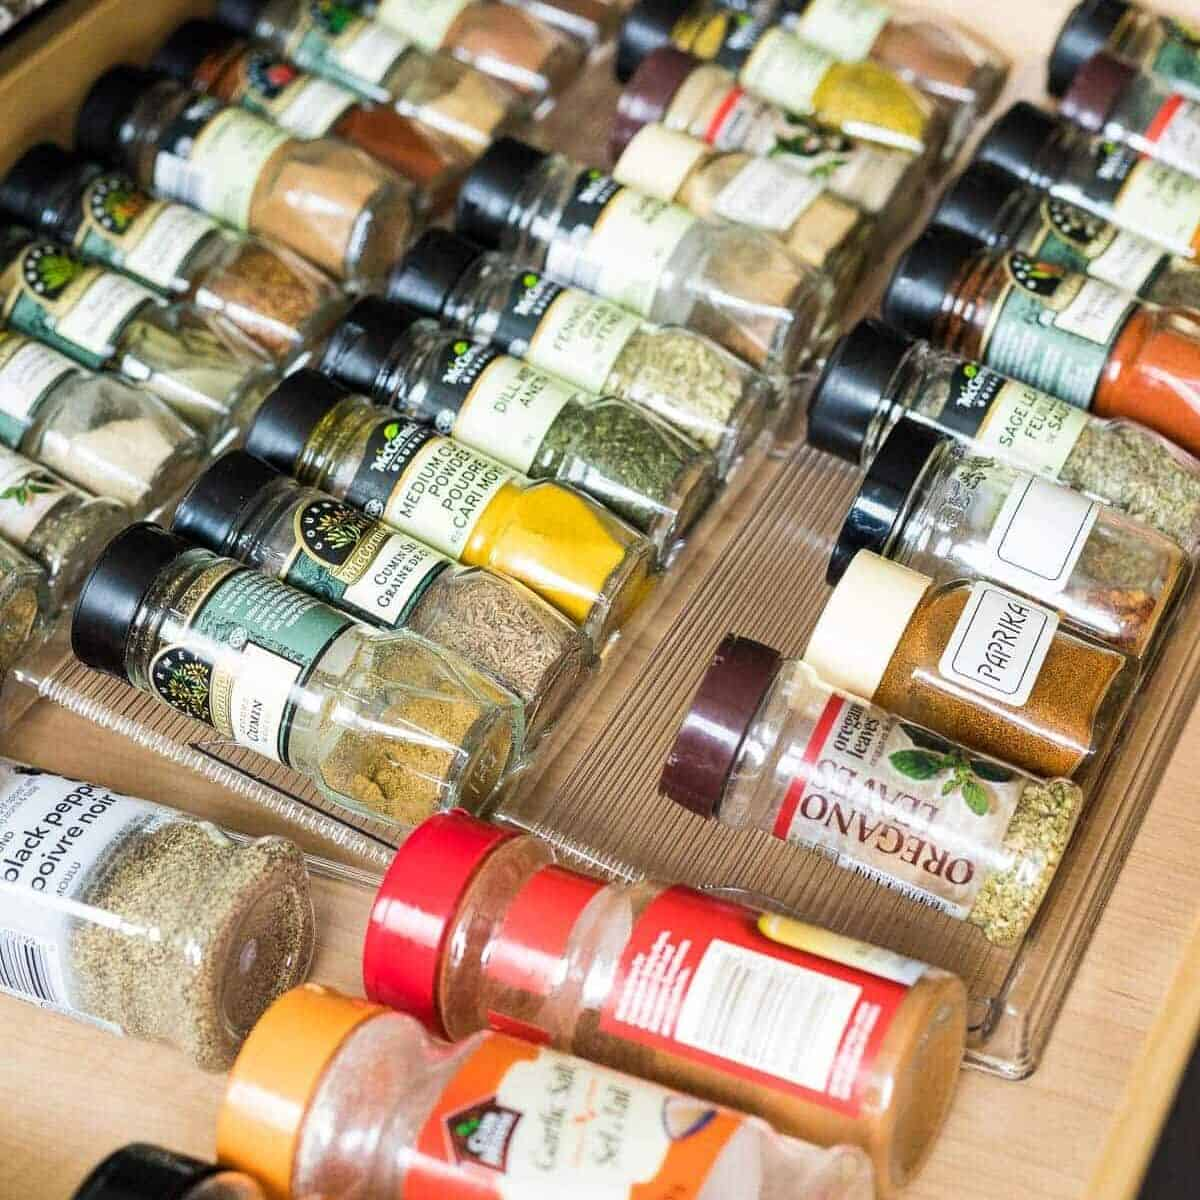 Rows of spices in glasses